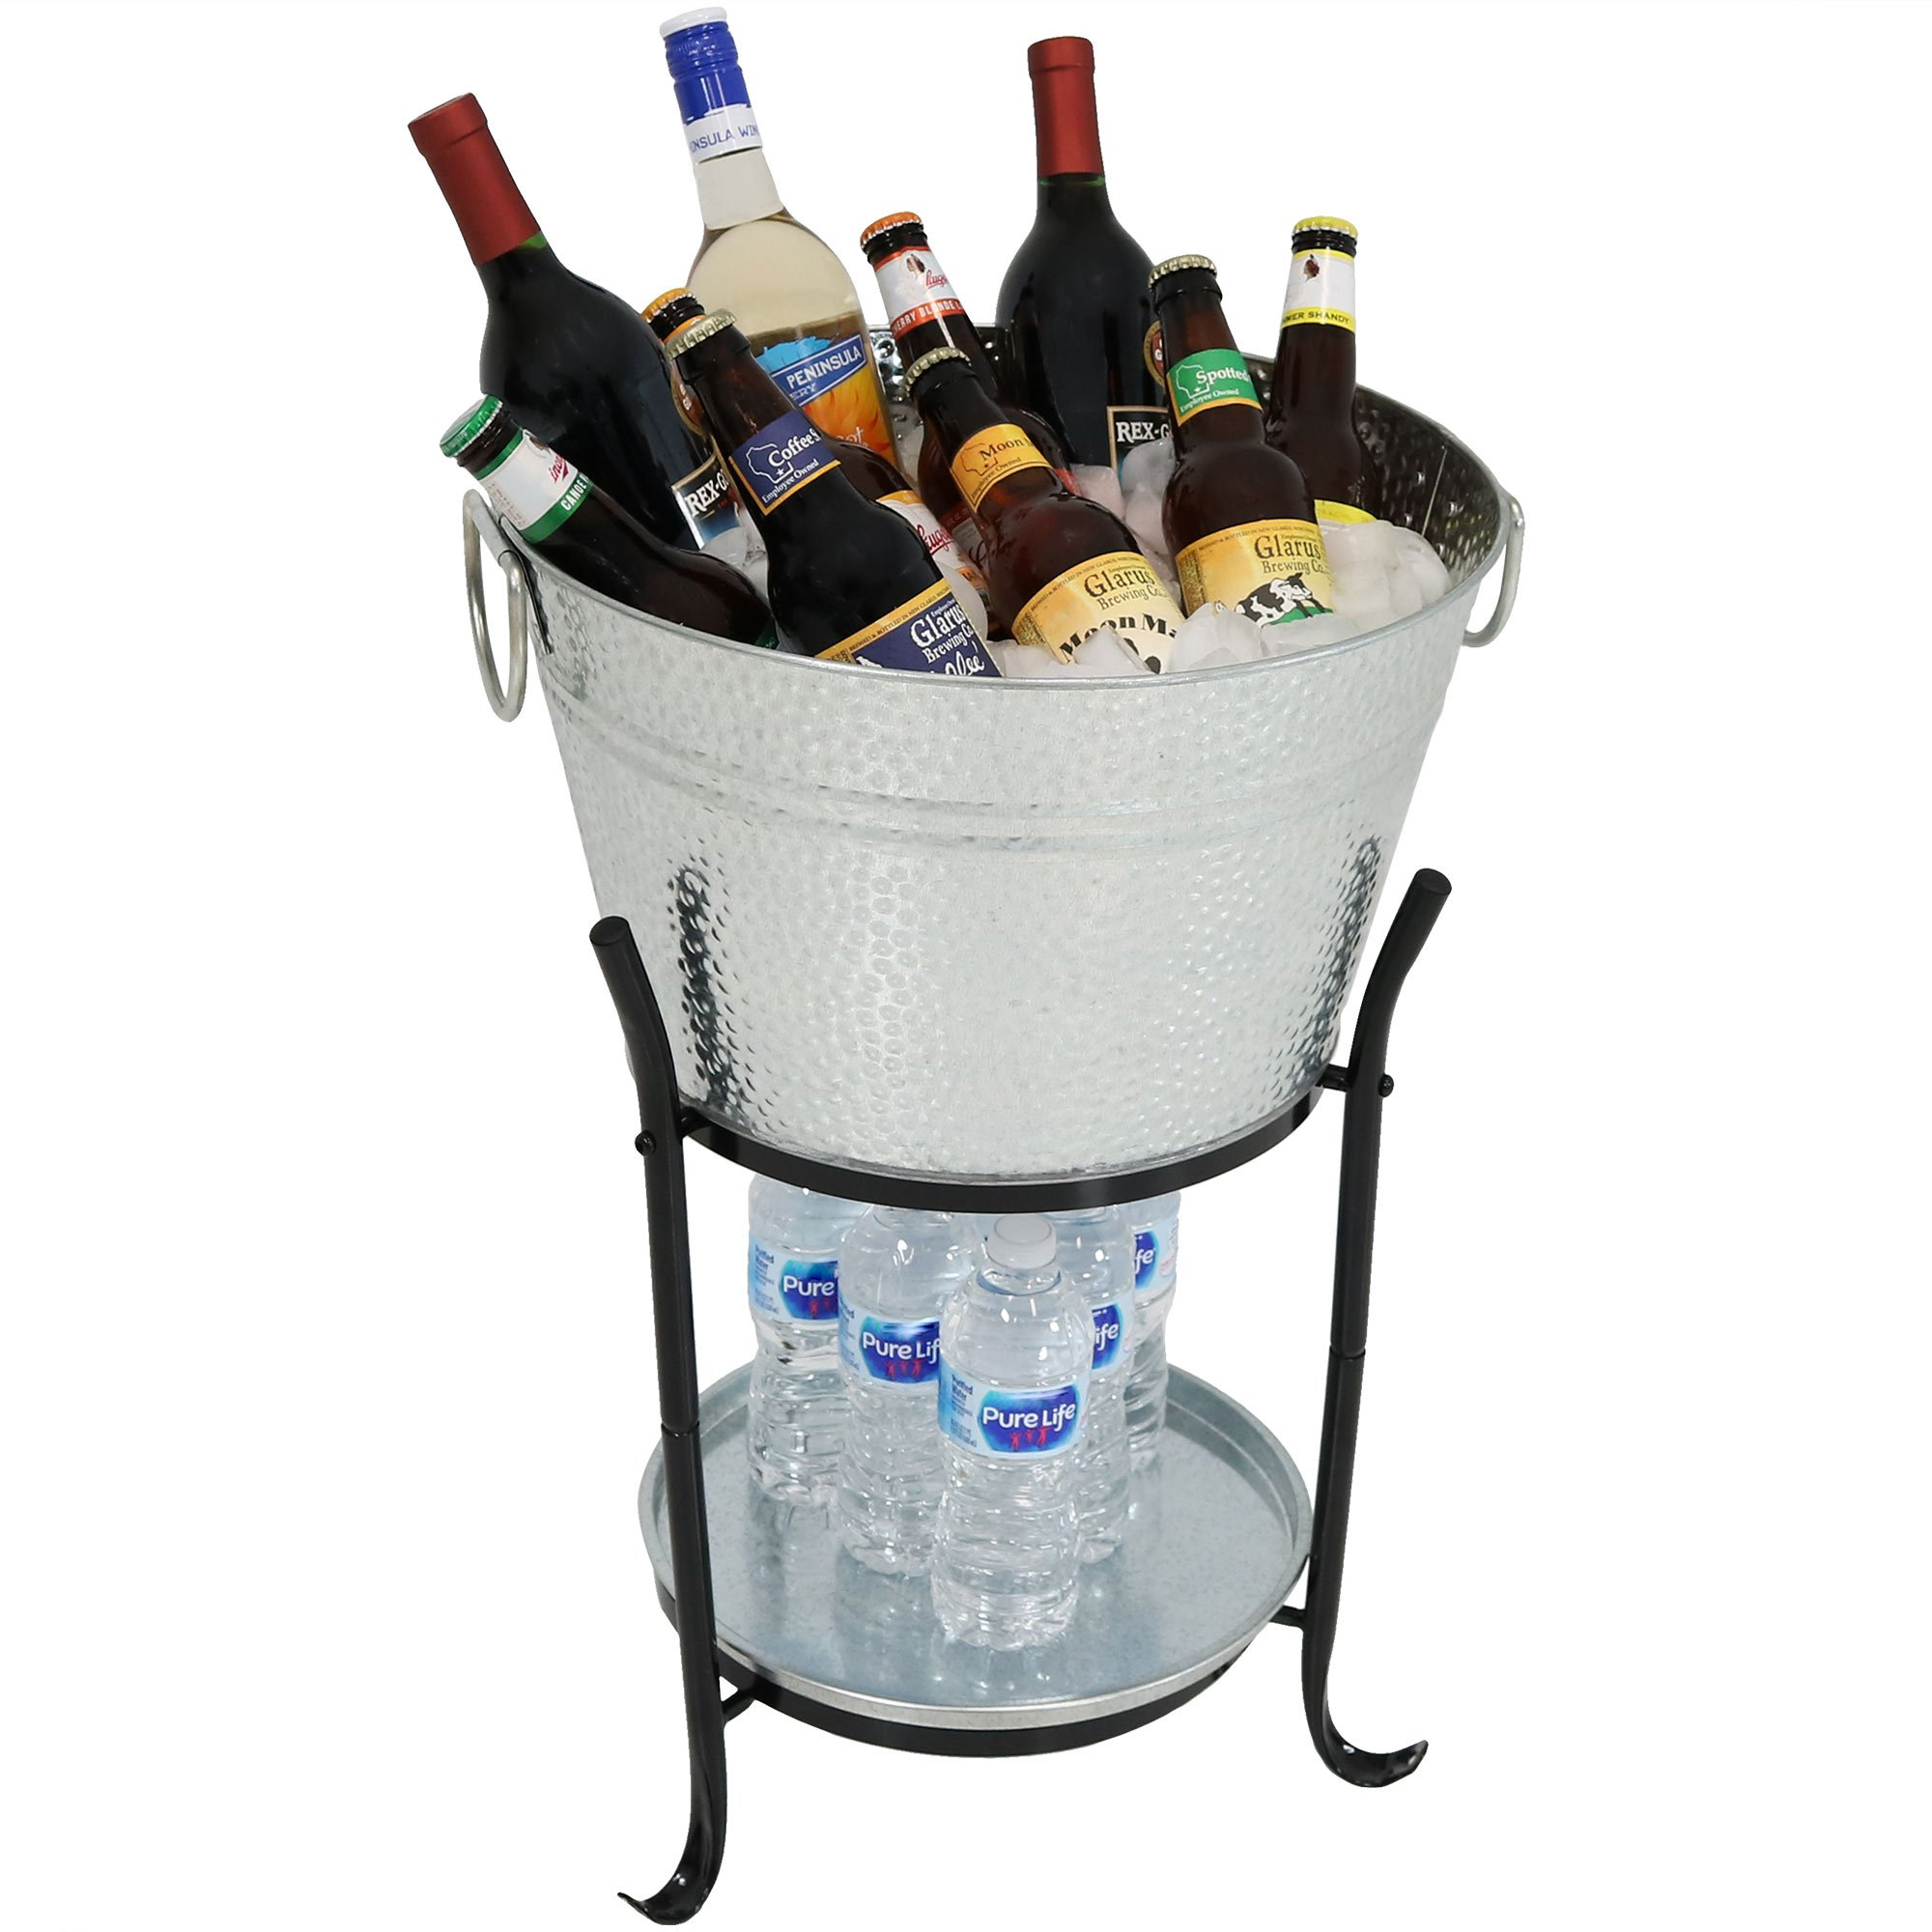 Sunnydaze Ice Bucket Drink Cooler with Stand and Tray for Parties, Pebbled Galvanized Steel, Holds Beer, Wine, Champagne and More by Sunnydaze Decor